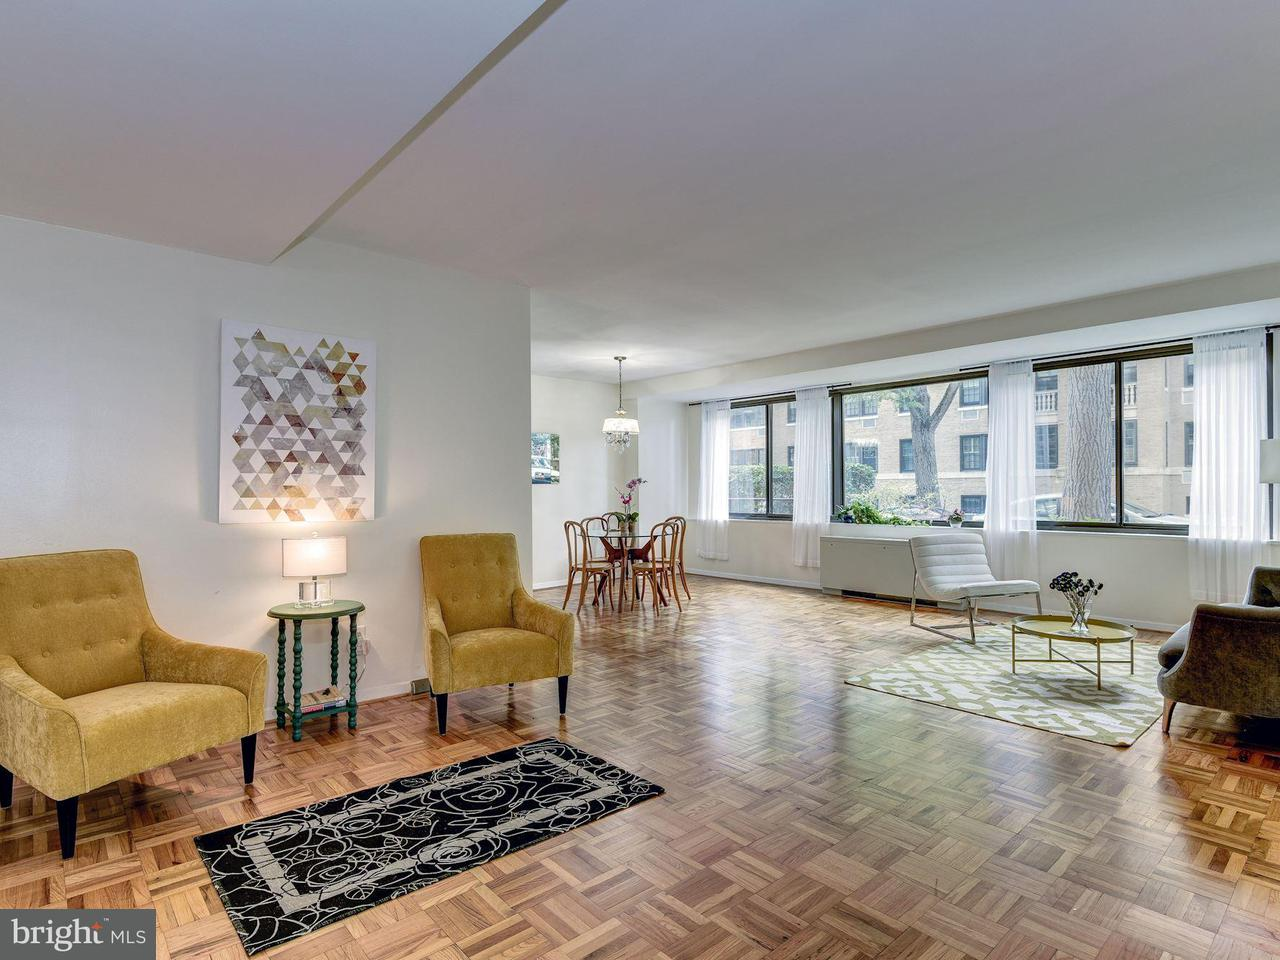 Additional photo for property listing at 4740 Connecticut Ave Nw #108 4740 Connecticut Ave Nw #108 Washington, Distretto Di Columbia 20008 Stati Uniti